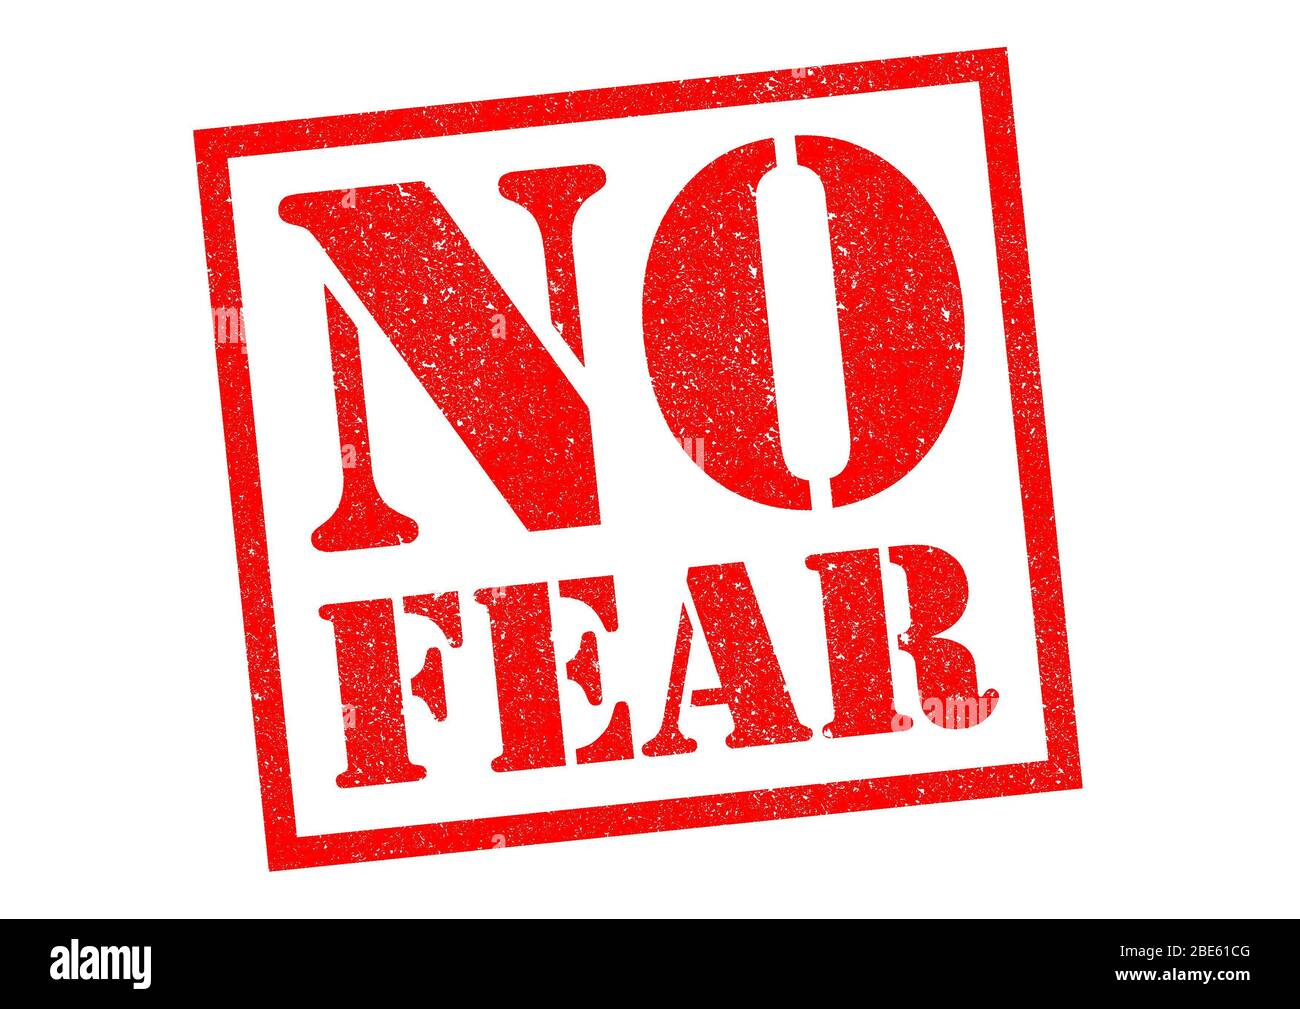 NO FEAR red Rubber Stamp over a white background. Stock Photo